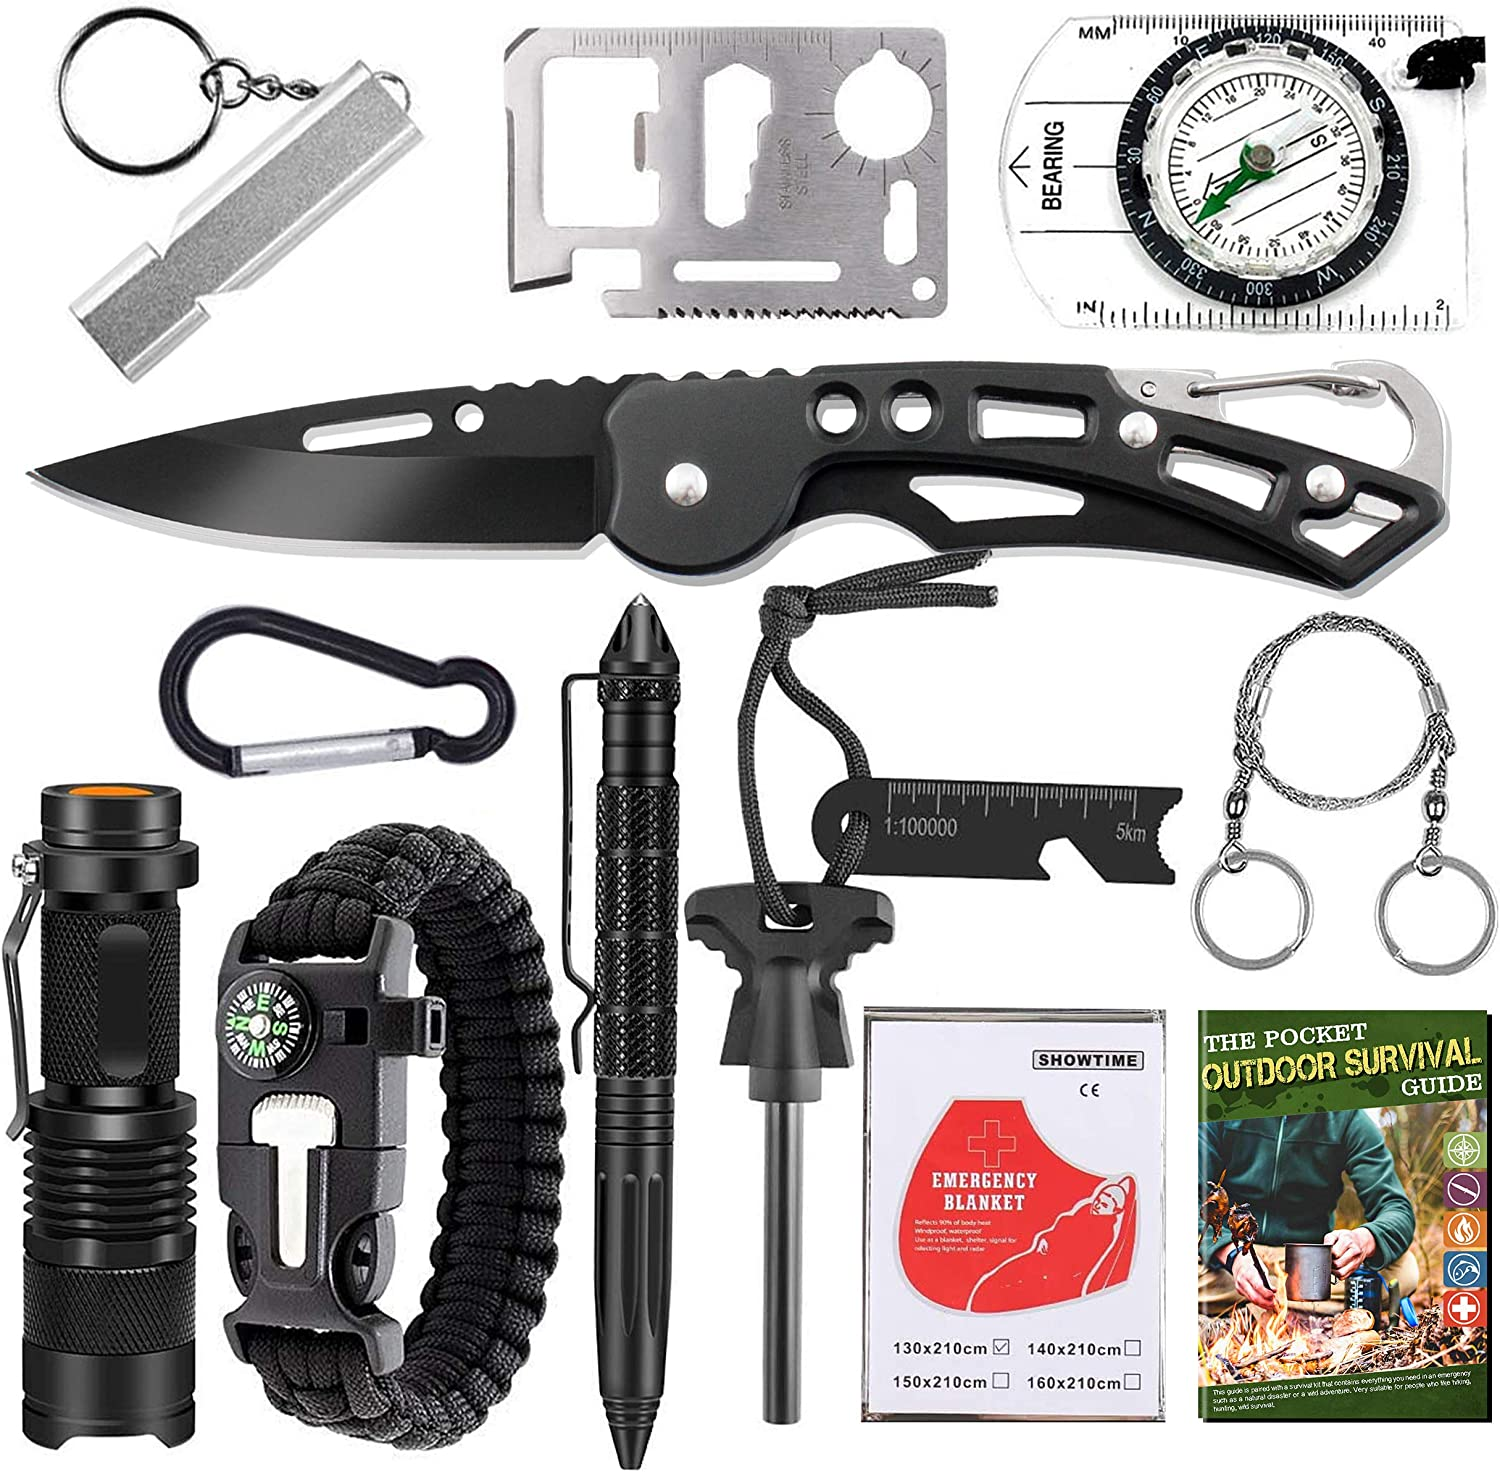 MIZUSUPI Survival Gear and Equipment 12 in 1,Emergency Tactical Tool Kit for Hiking Camping Fishing Adventures, Gifts for Men Dad Husband,Christmas Stocking Stuffers